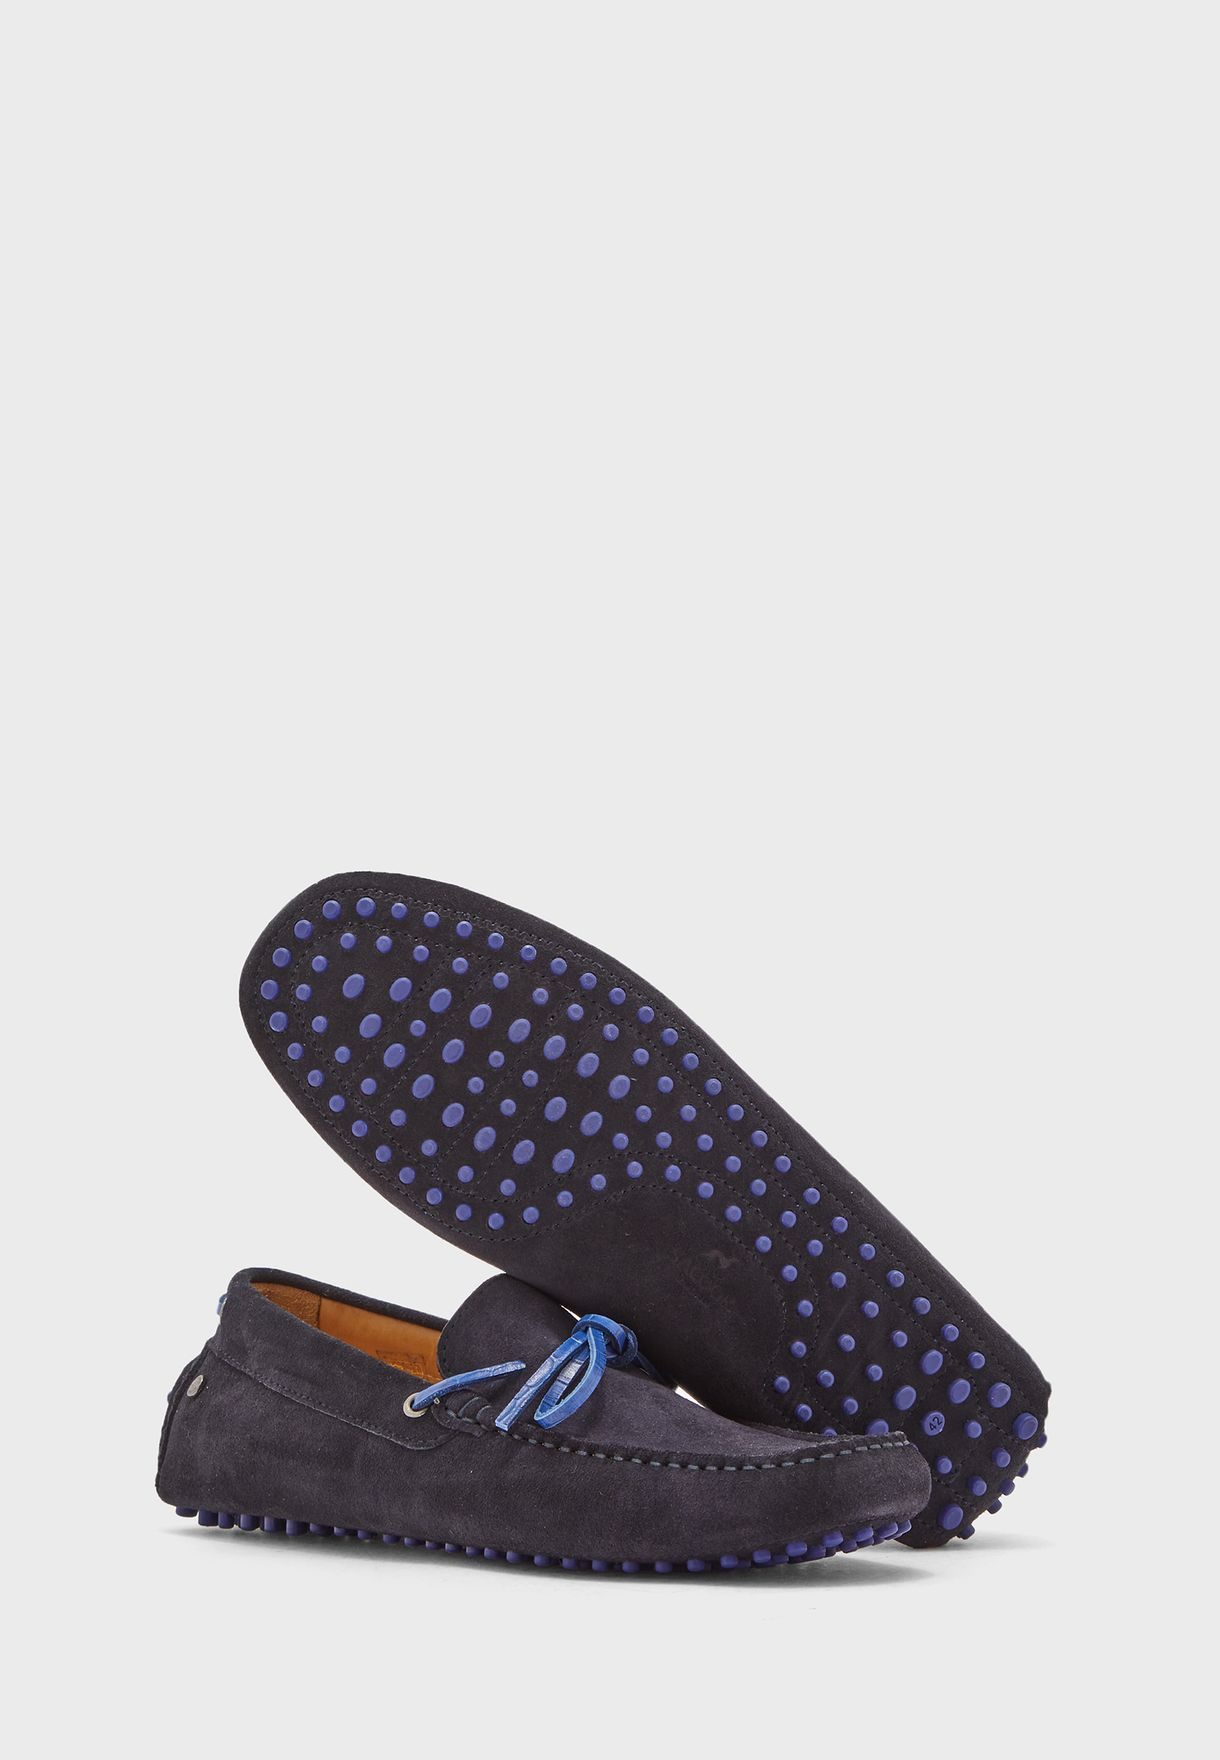 Slip Ons Loafers & Moccasins